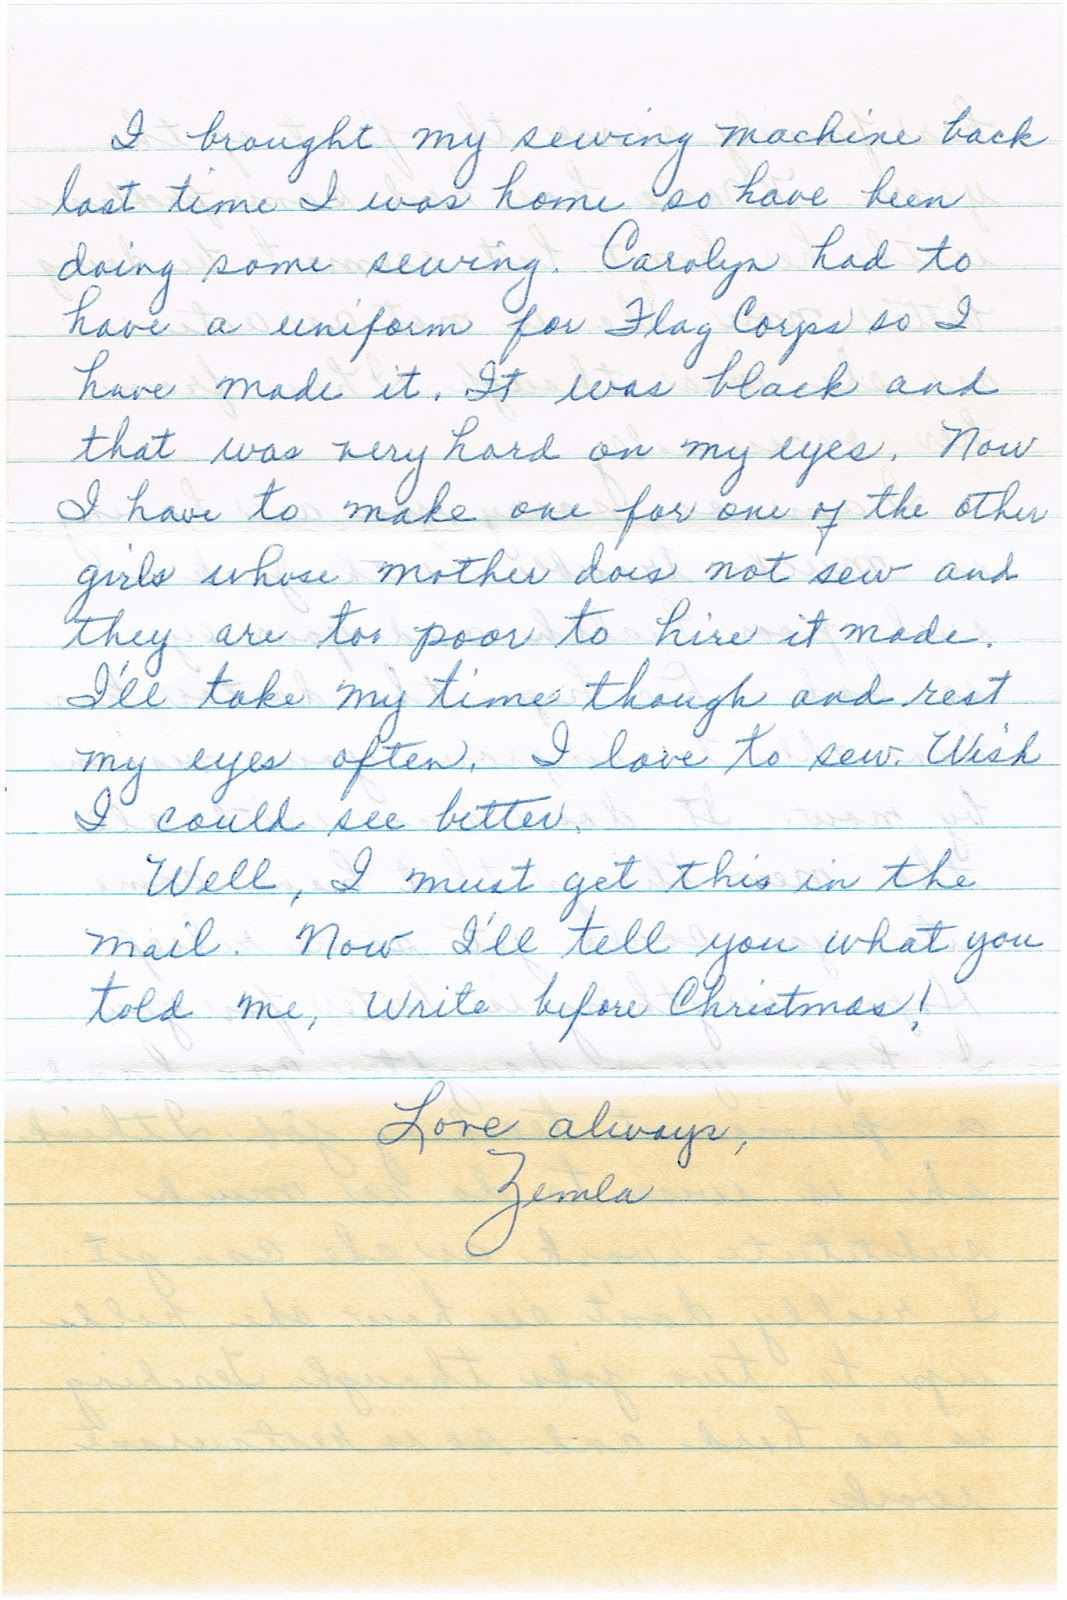 conclusion of letter between friends and former classmates from Fort Meade High School class of 1919